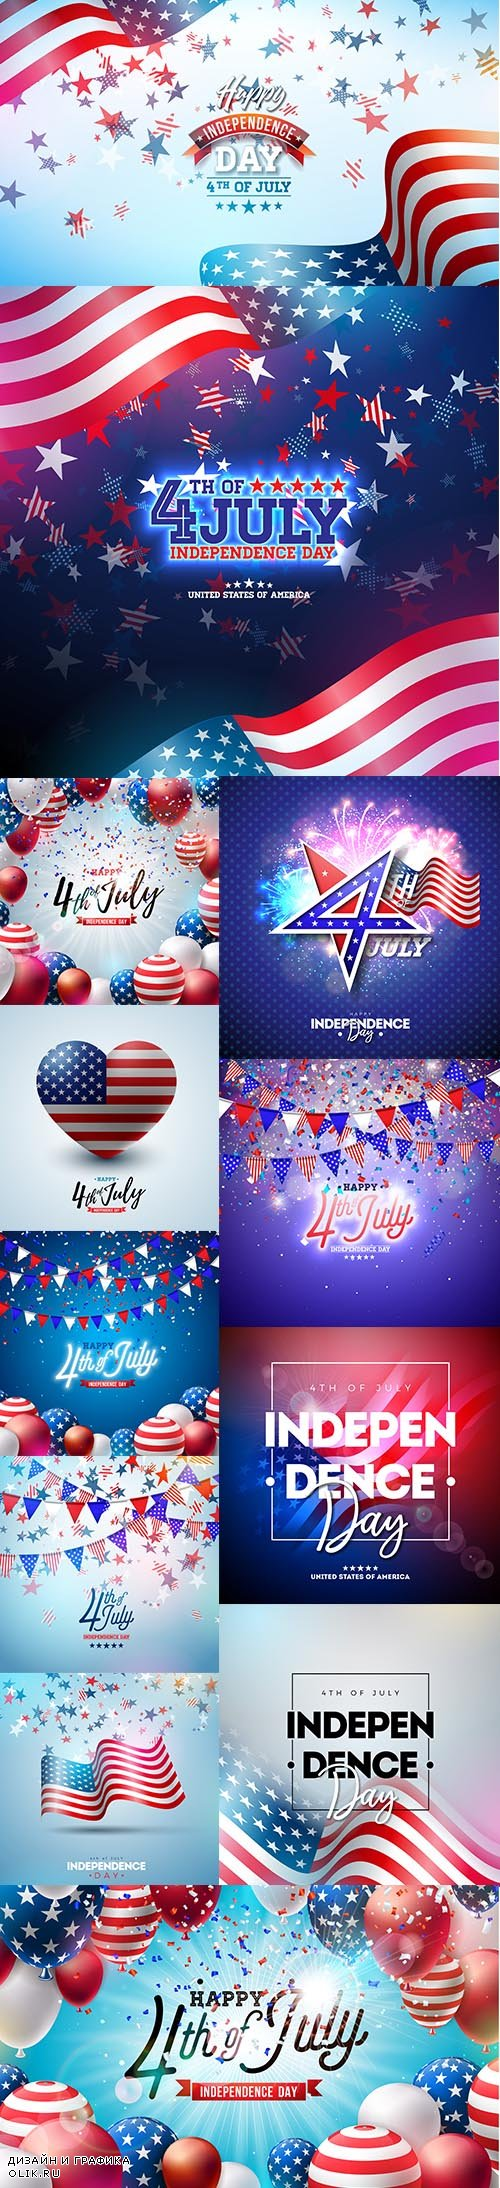 4th July Independence Day USA Premium Illustrations Vector Set